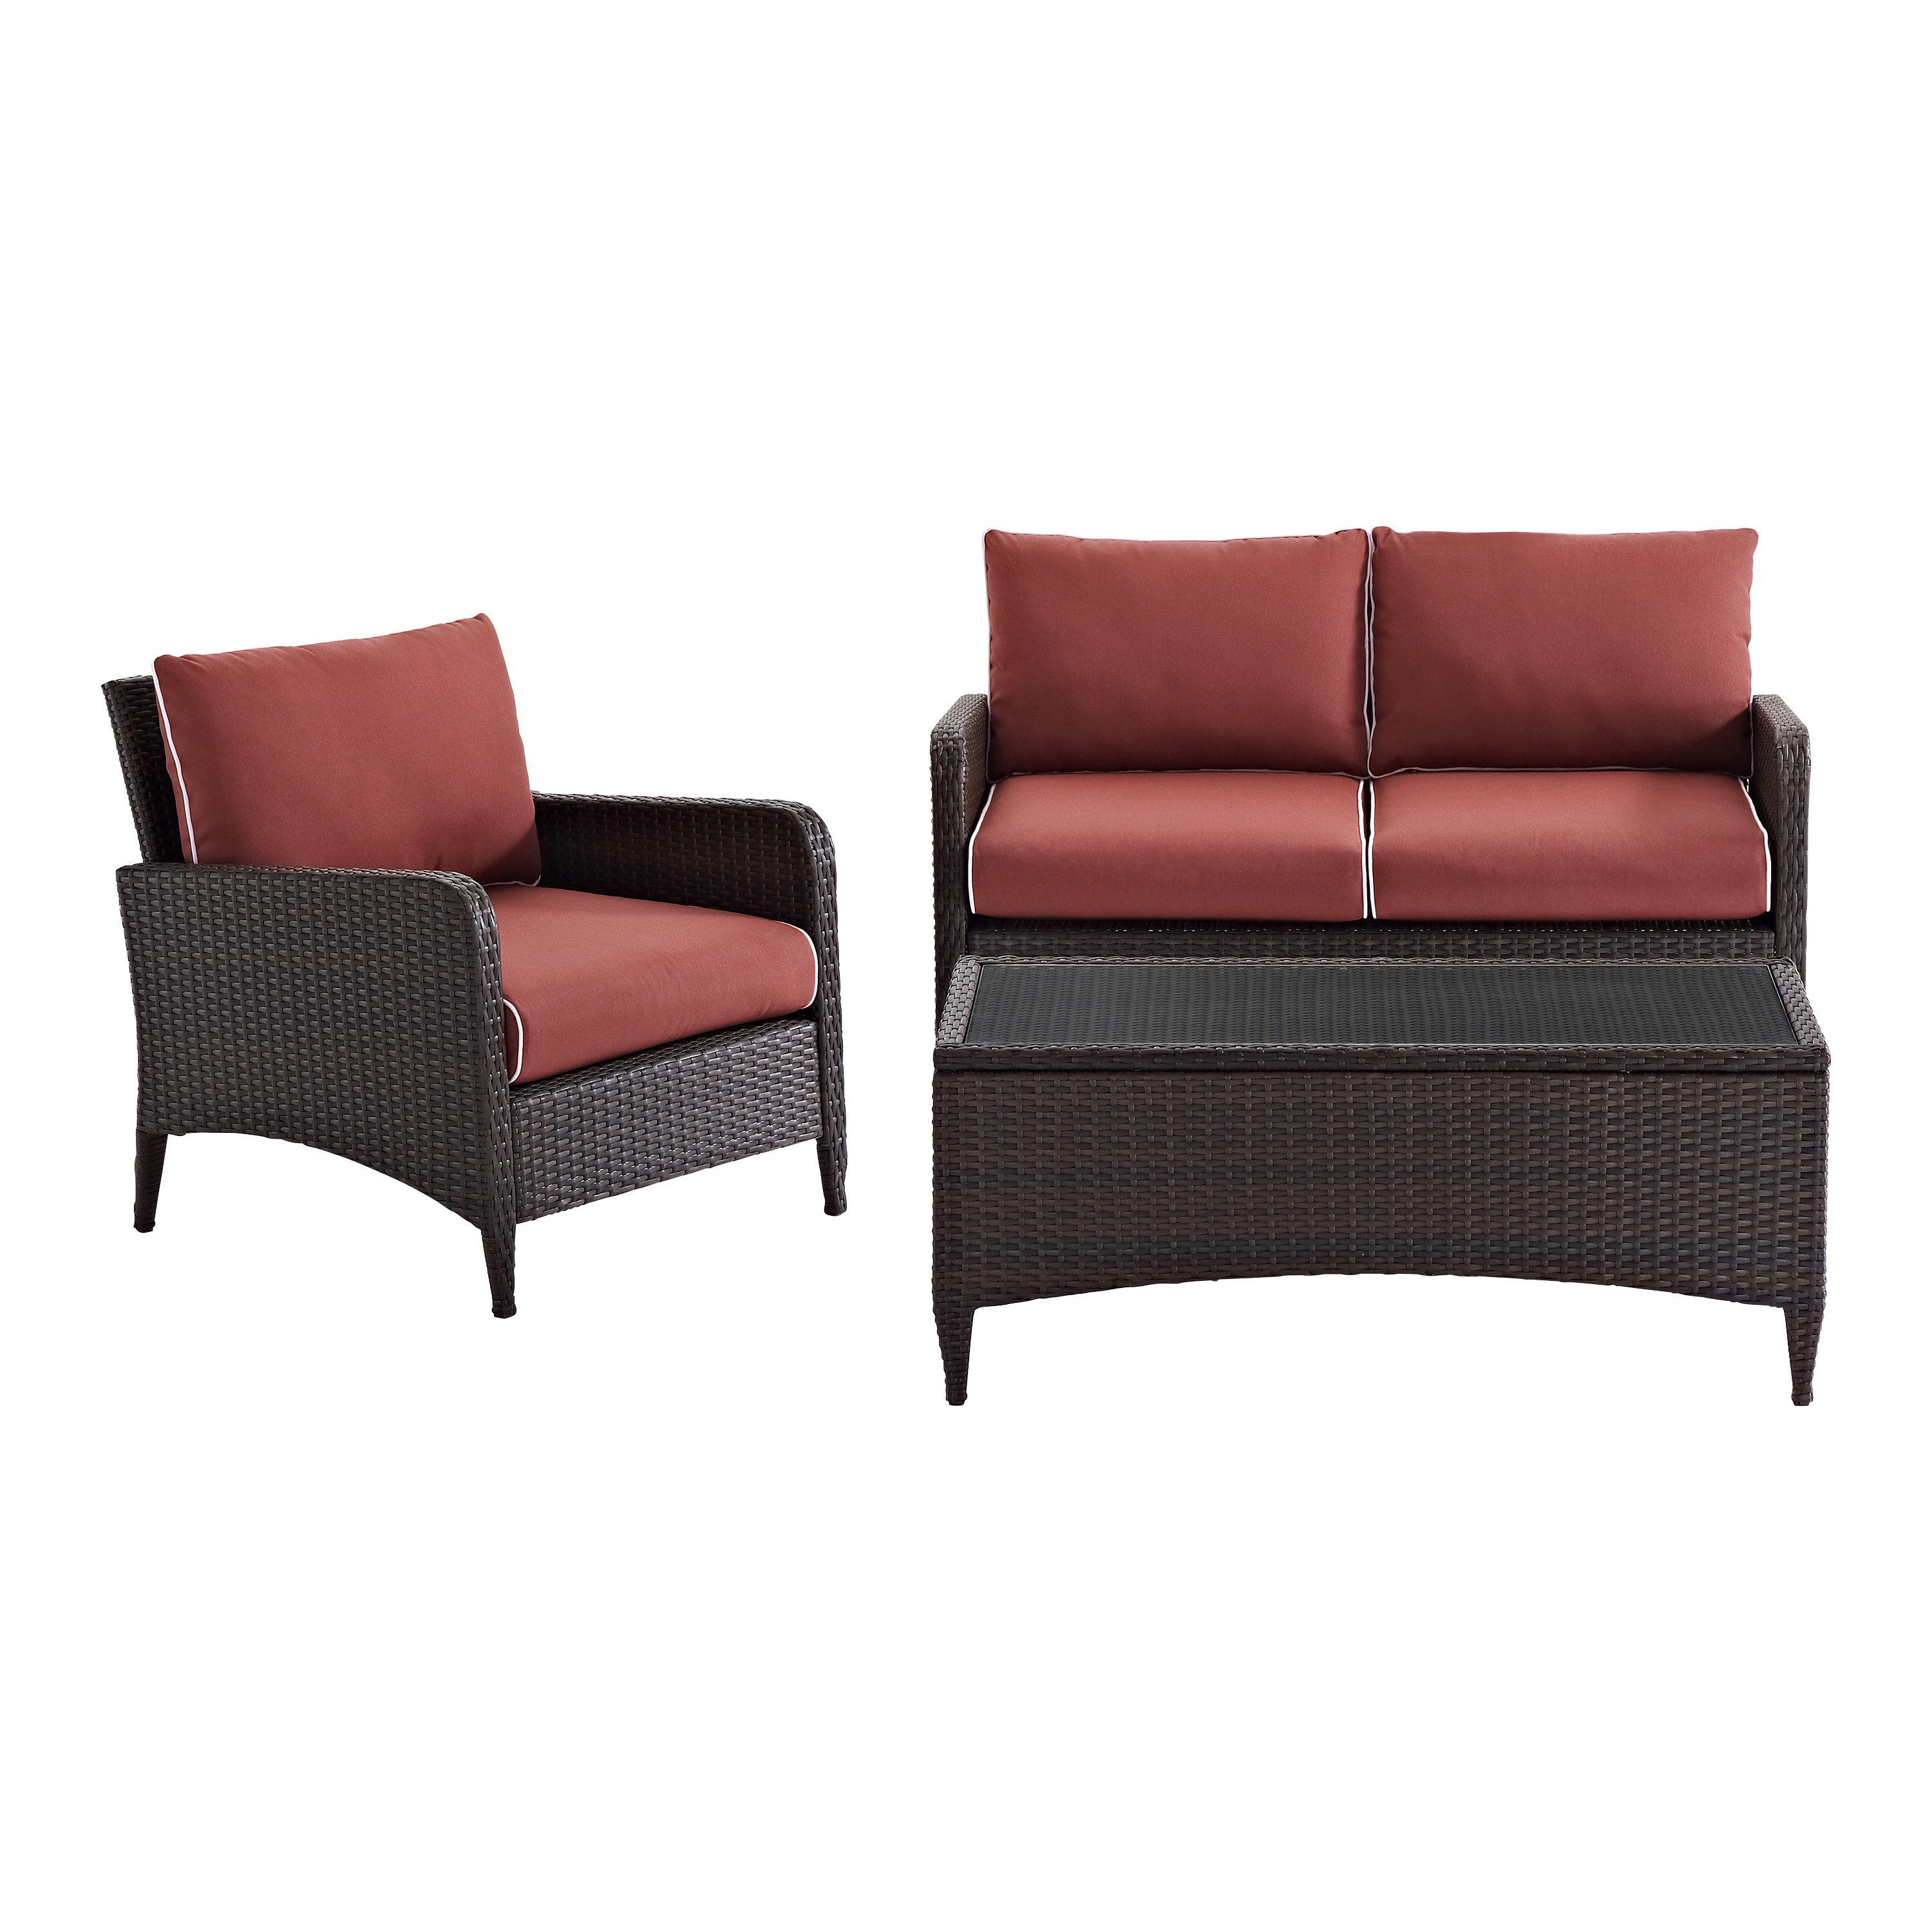 Most Recent Mosca 3 Piece Sofa Set With Cushions Throughout Mosca Patio Loveseats With Cushions (View 4 of 20)